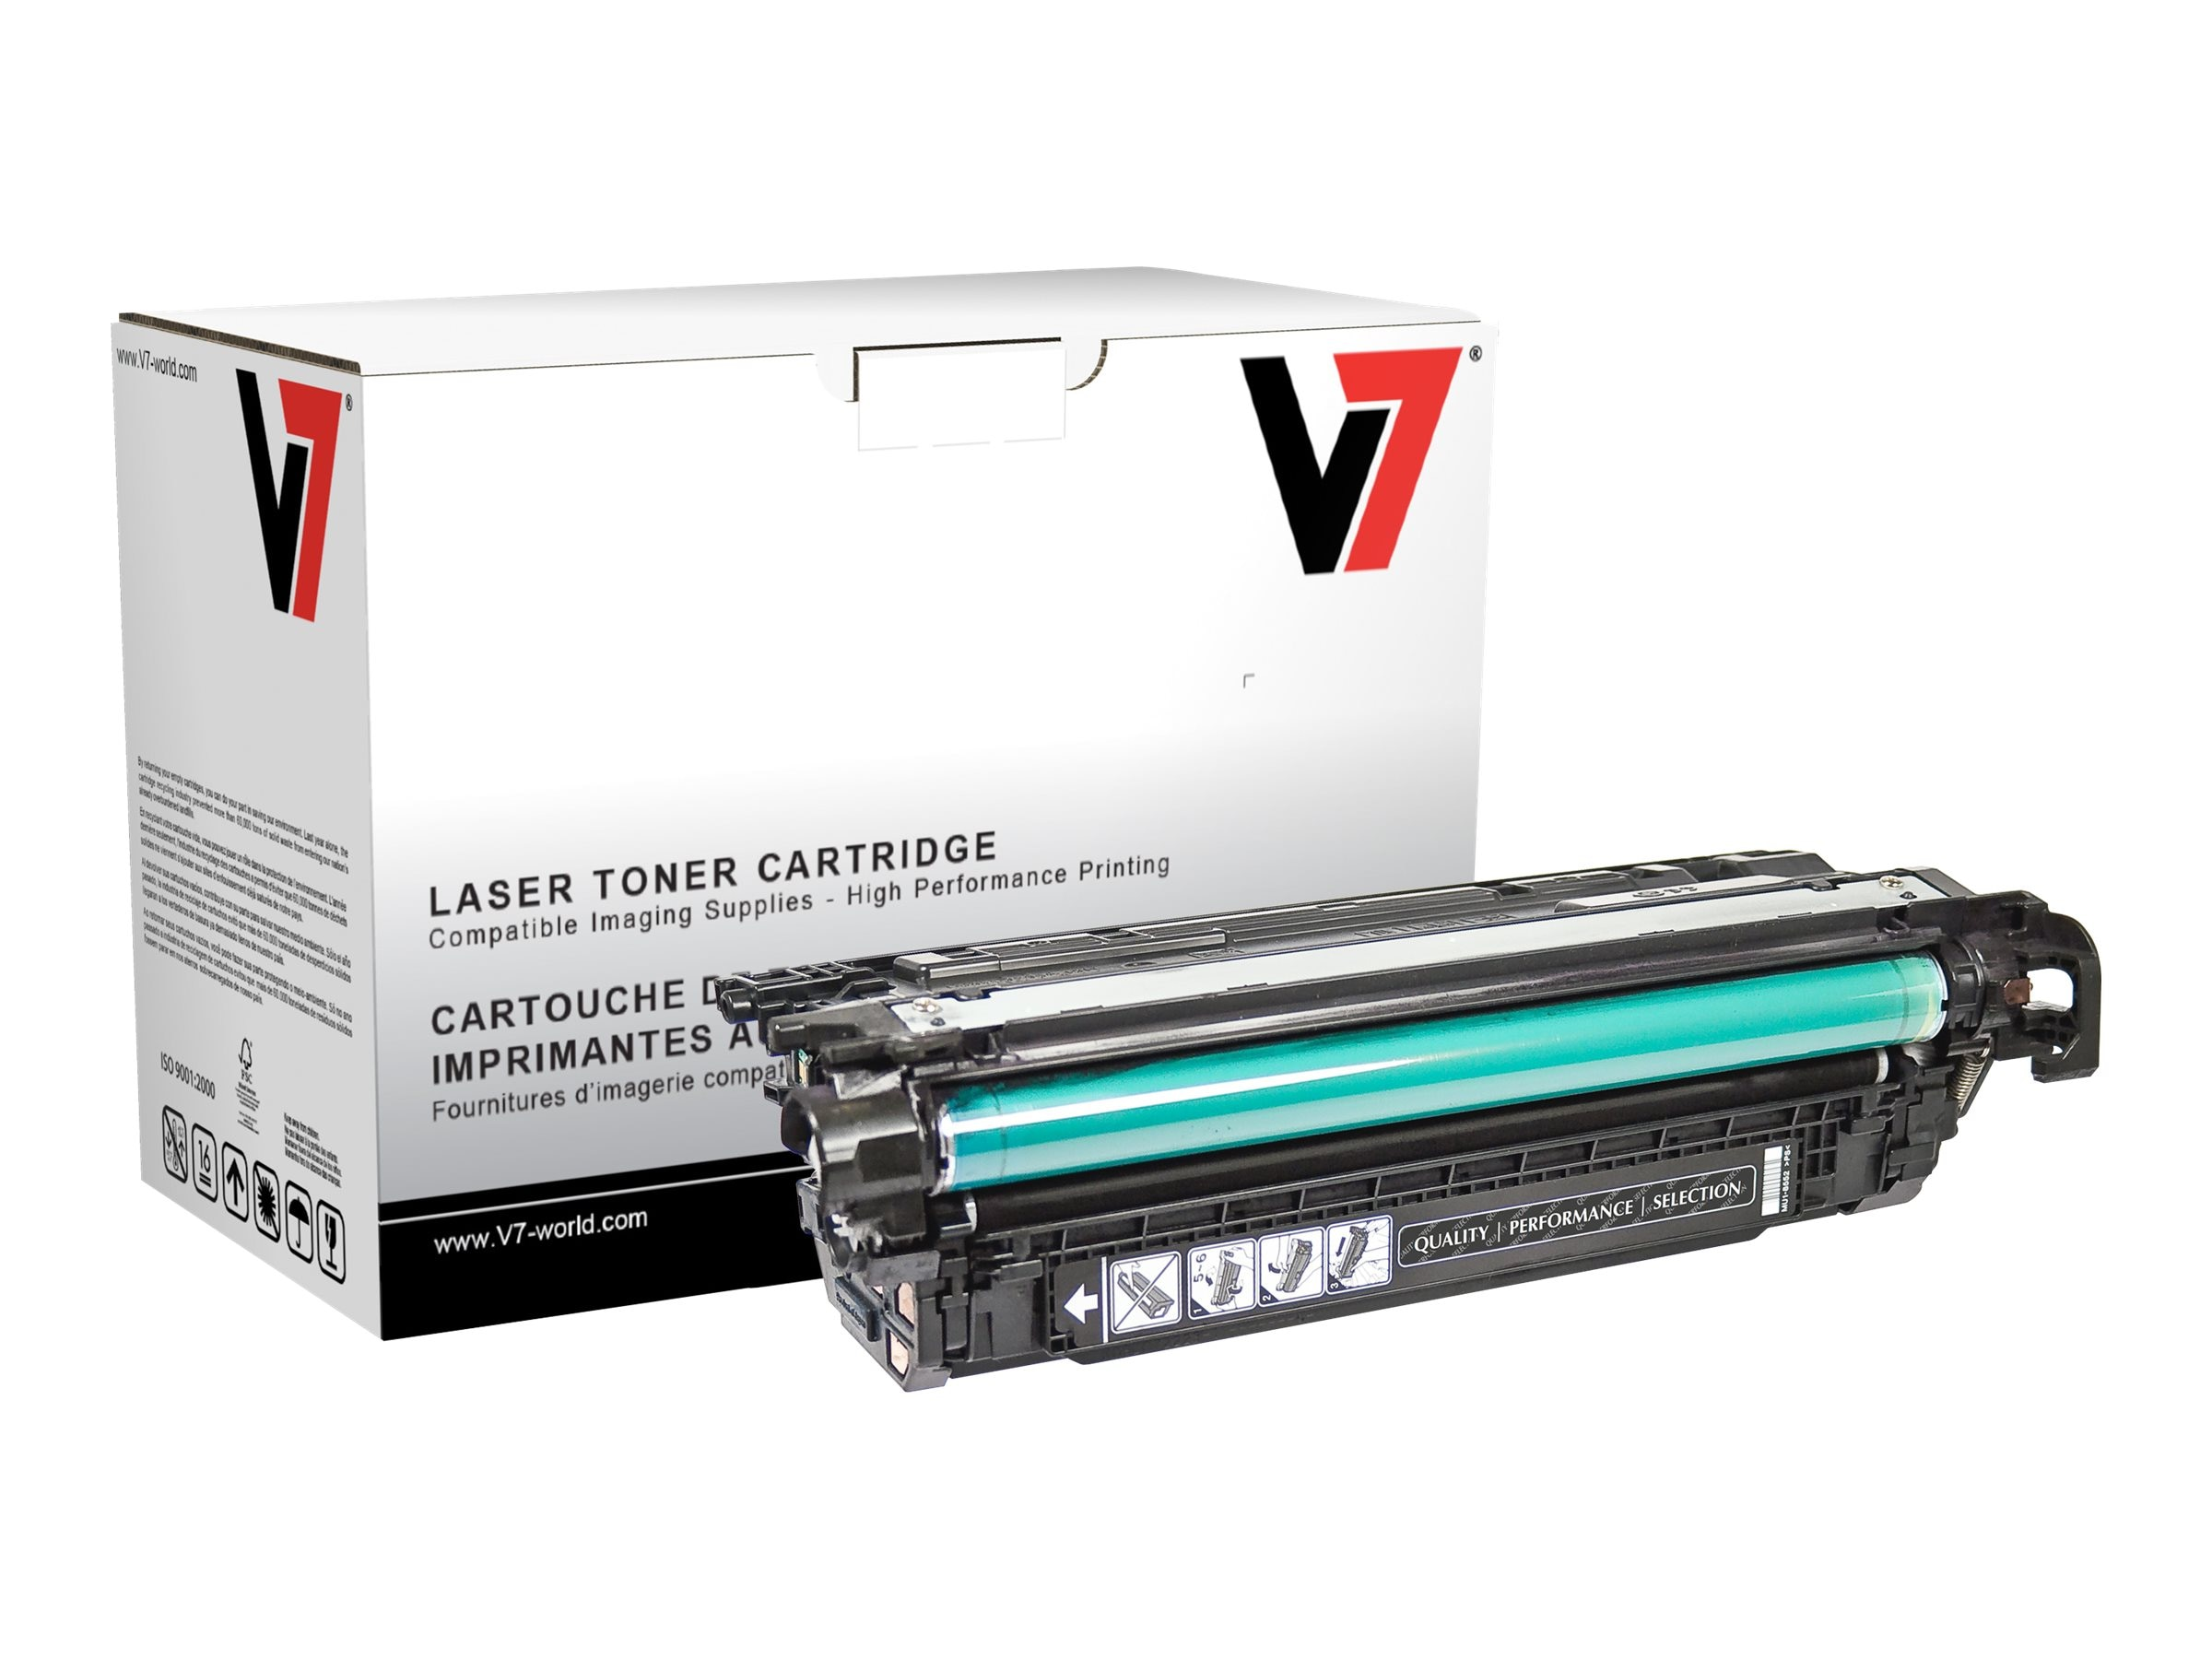 V7 CE260A Black Toner Cartridge for HP LaserJet P4025 4525 (TAA Compliant), THK2260A